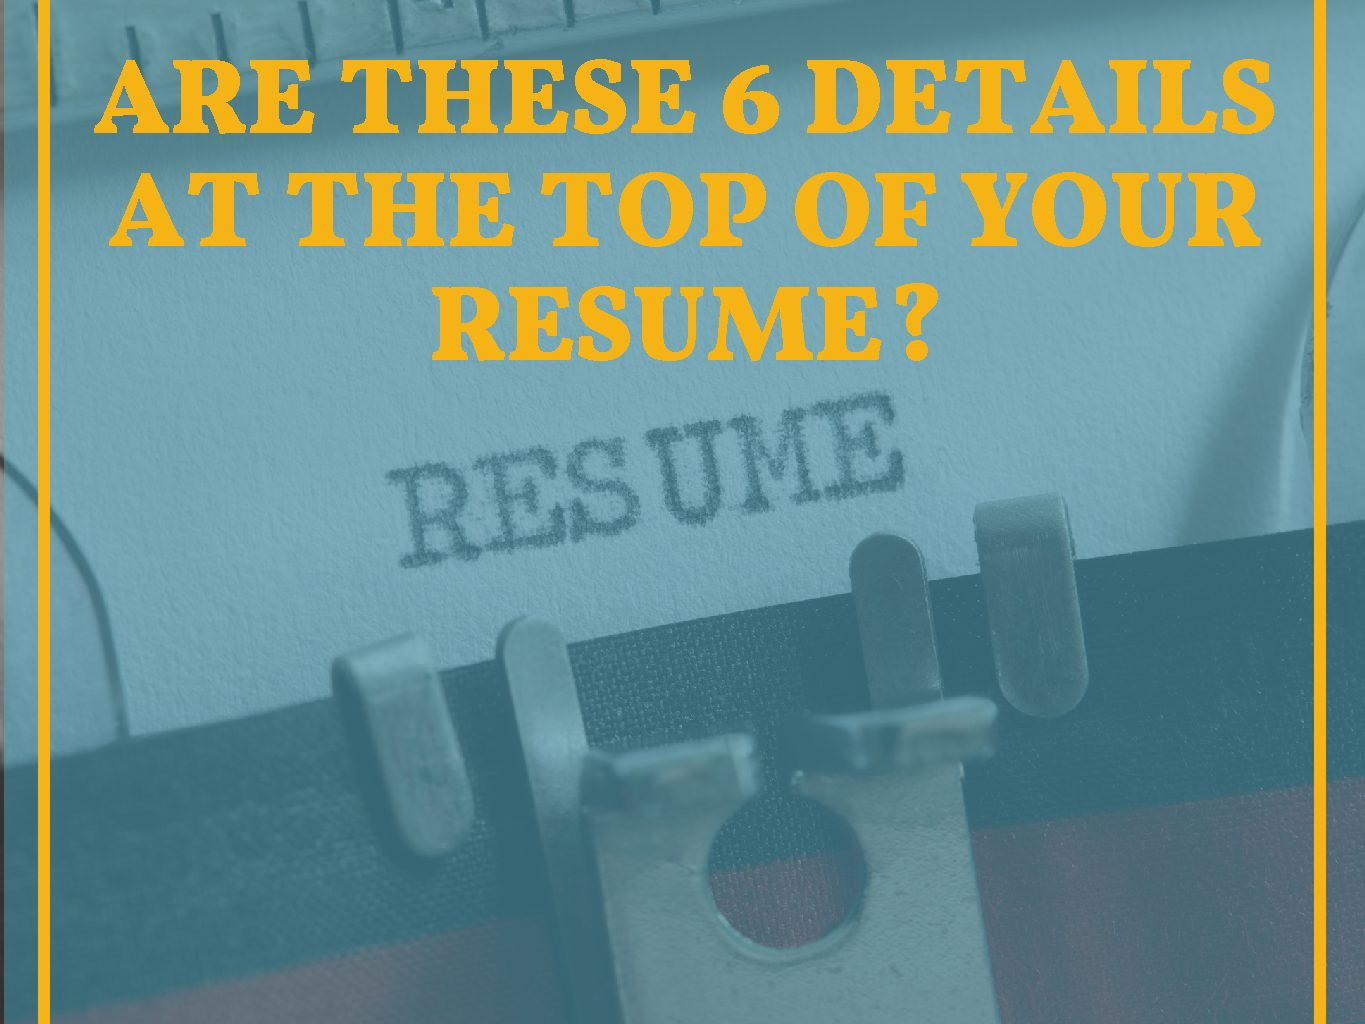 The 6 Details You Must Include At The Top Of Your Resume Iambackatwork